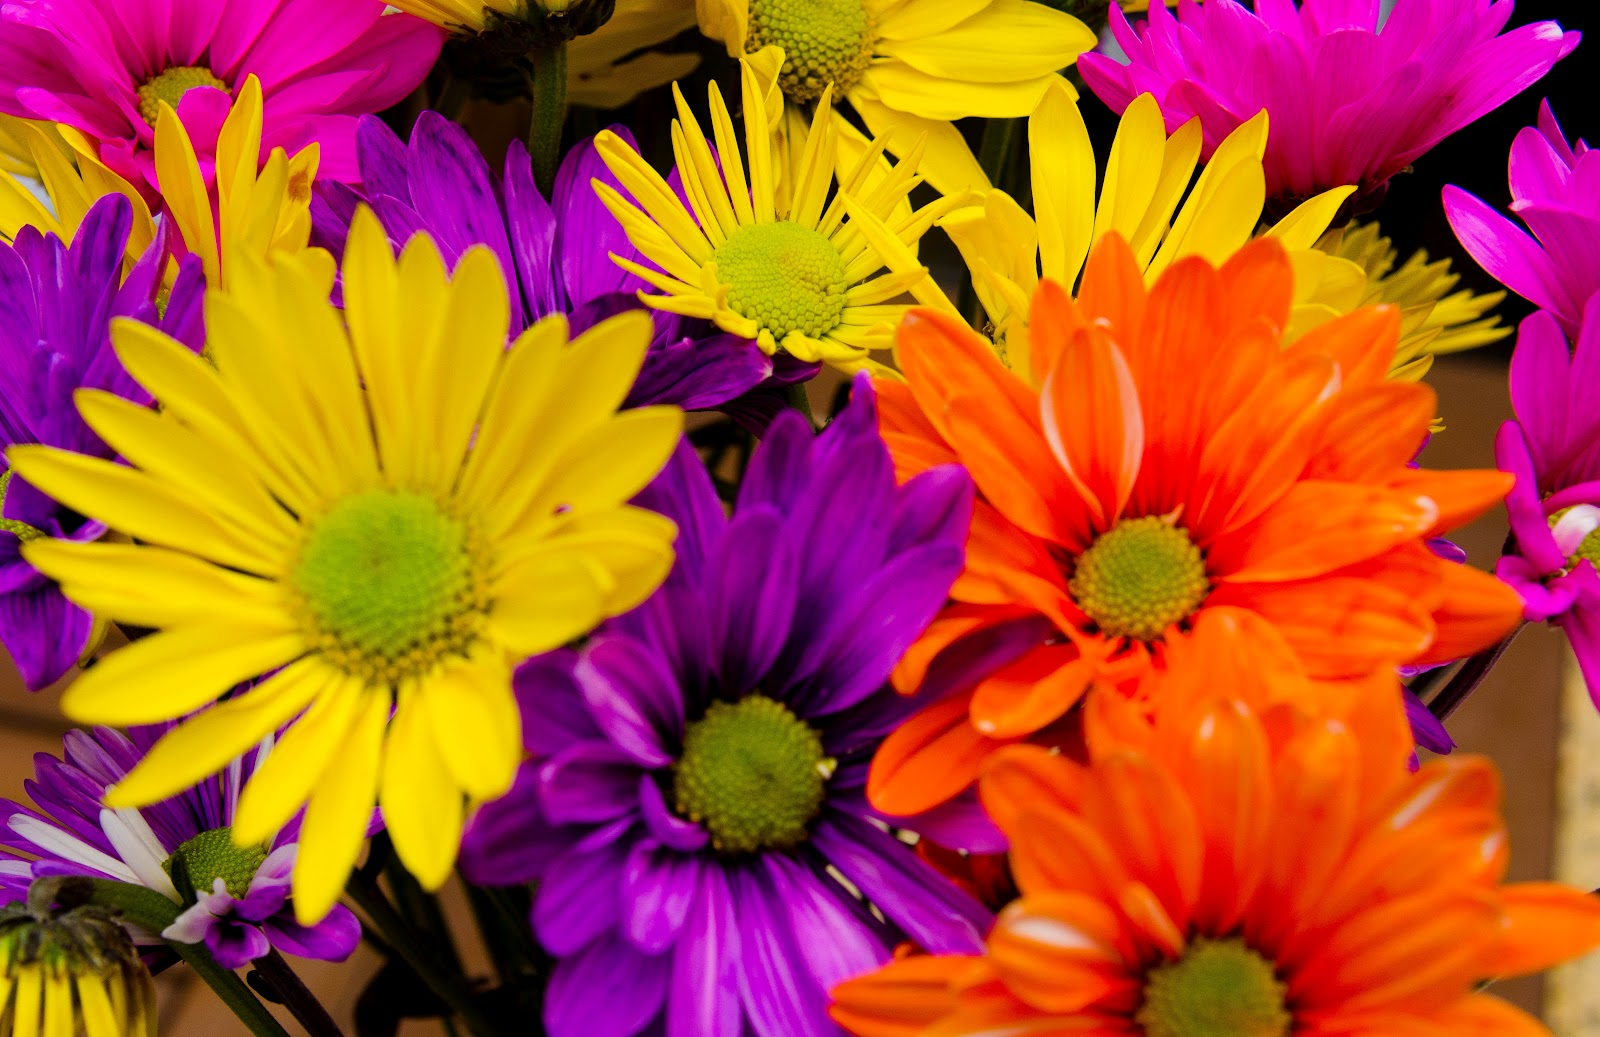 Semi Professional Kitchen Faucet Colored Daisies 28 Images Multi Colored Stock Photo